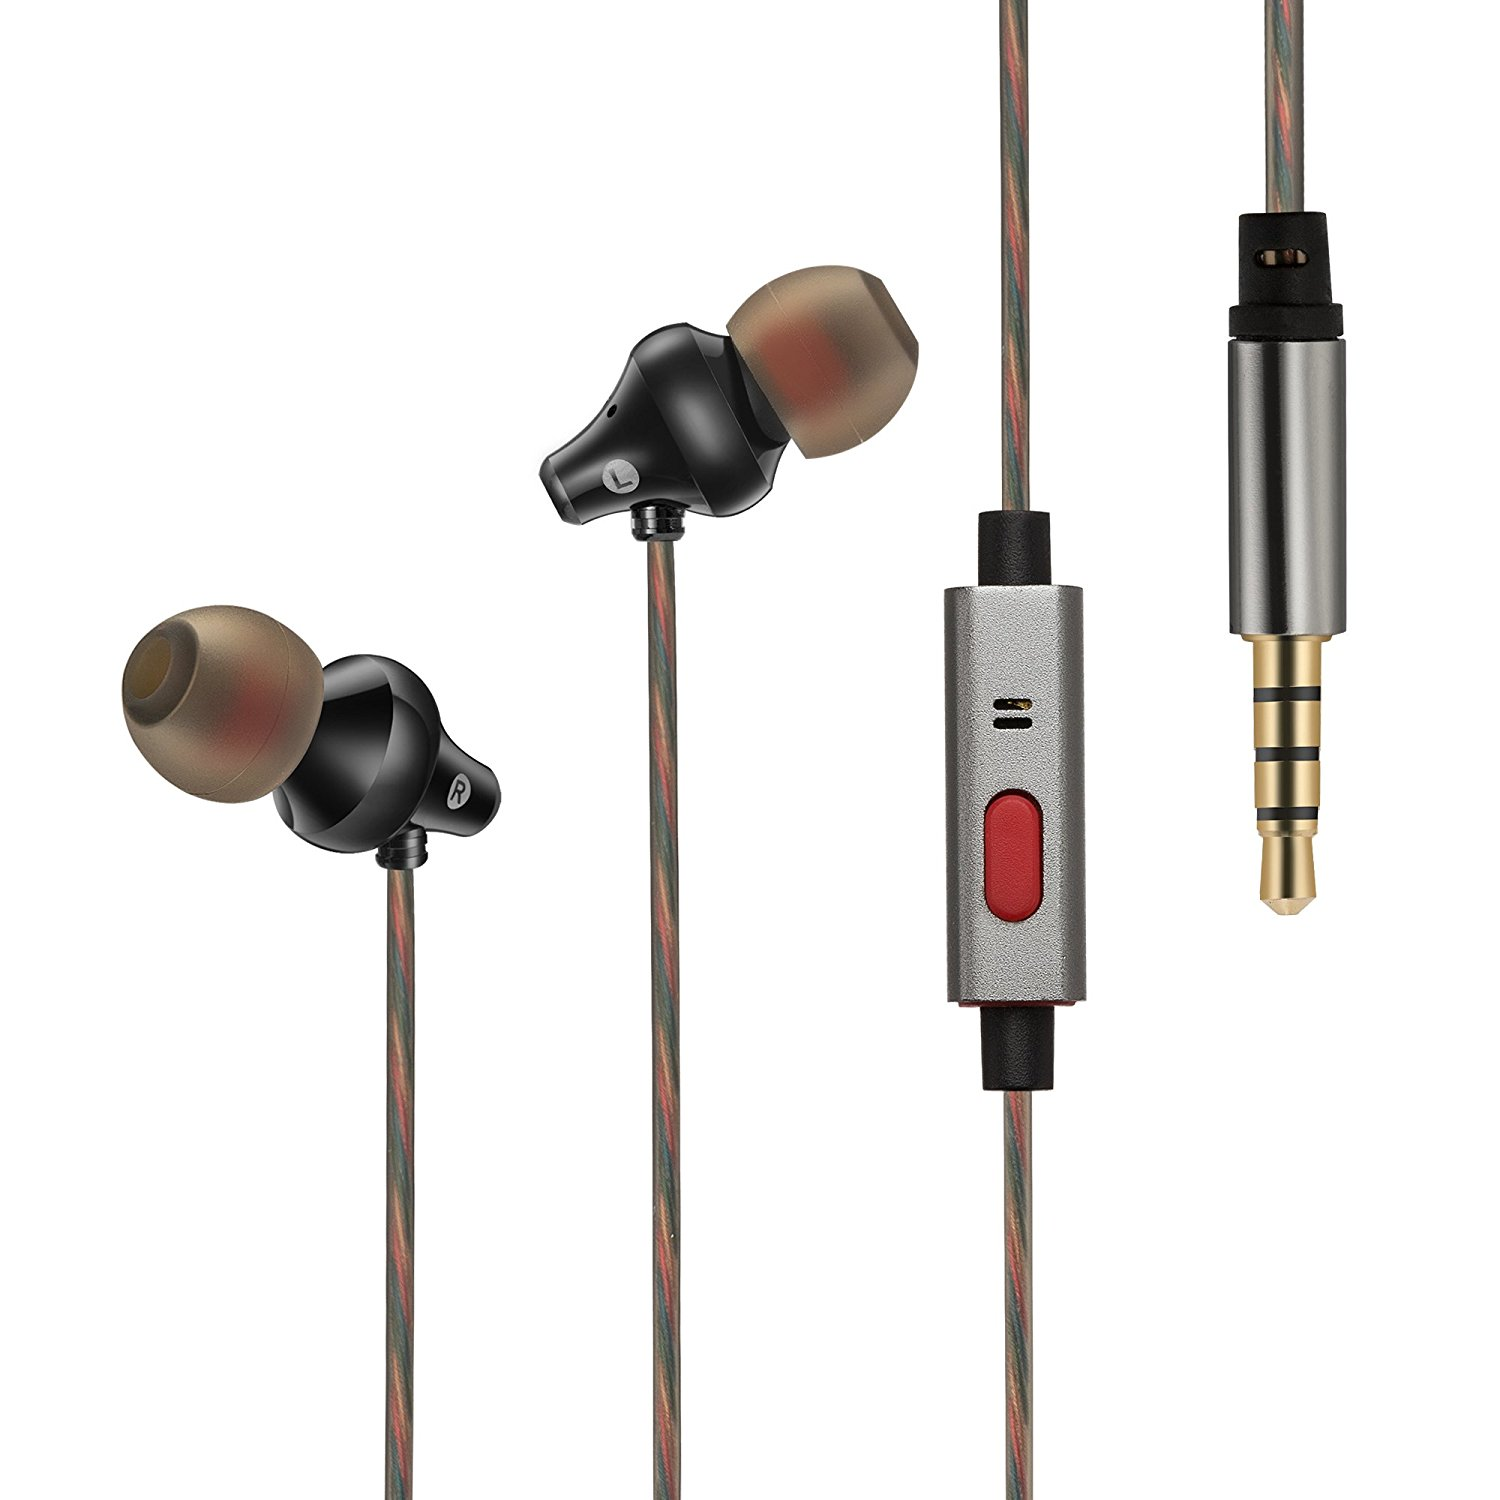 In Ear Noise Cancelling Headphones - Popwinds Wired Bass Stereo Earphones, HiFi 3.5mm Earbuds with microphone for Apple iPhone/Android/Laptop/Tablet/iPad